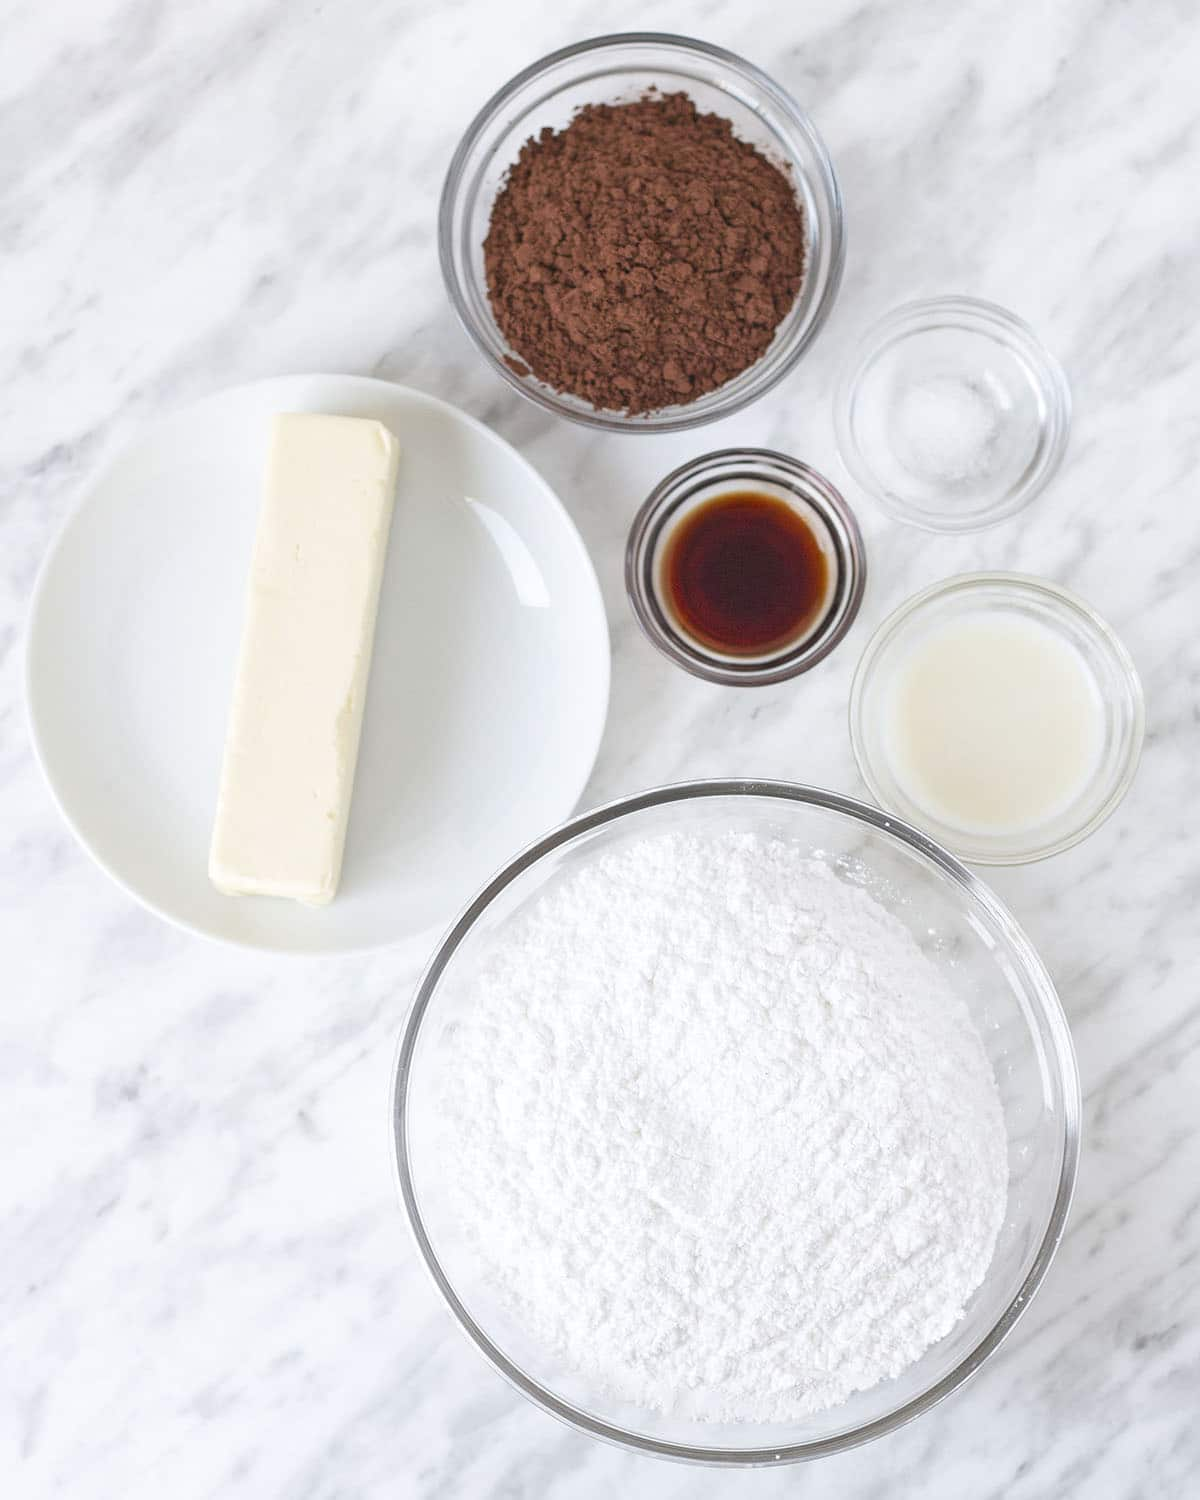 Overhead shot of all the ingredients needed to make vegan chocolate icing, each ingredient is in a separate dish or bowl.